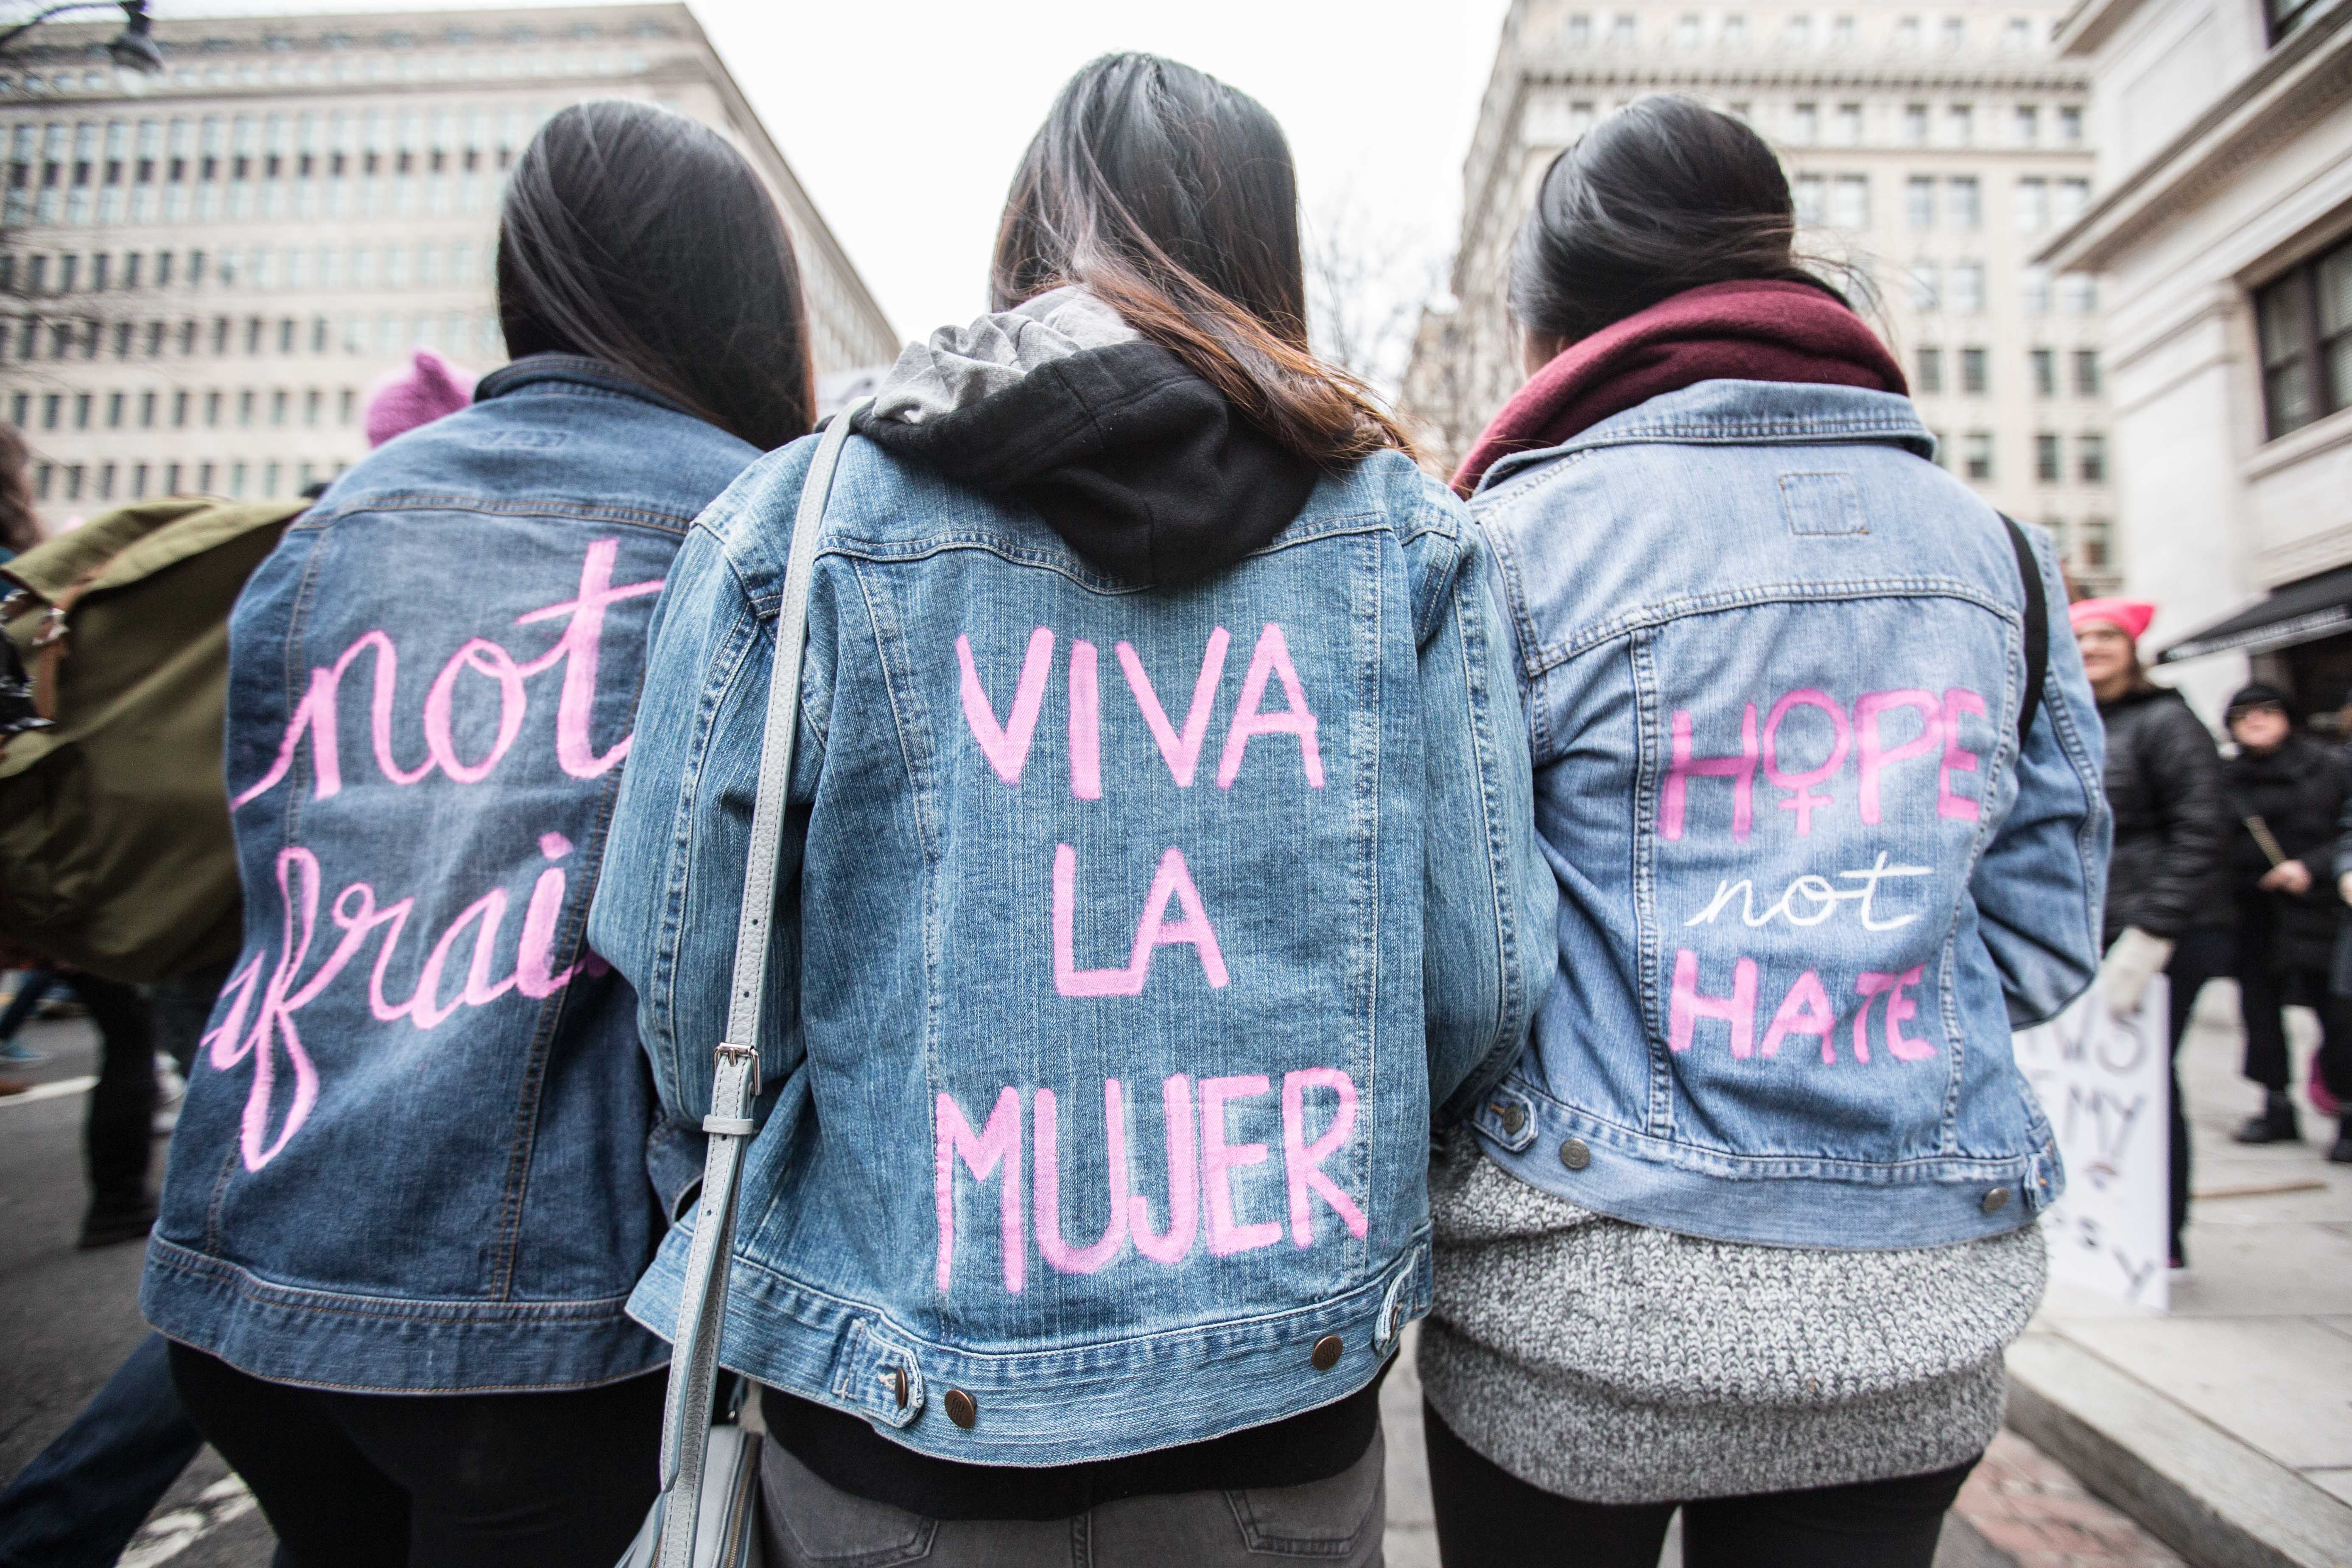 How Latinas Have Helped Shape the 2019 Women's March